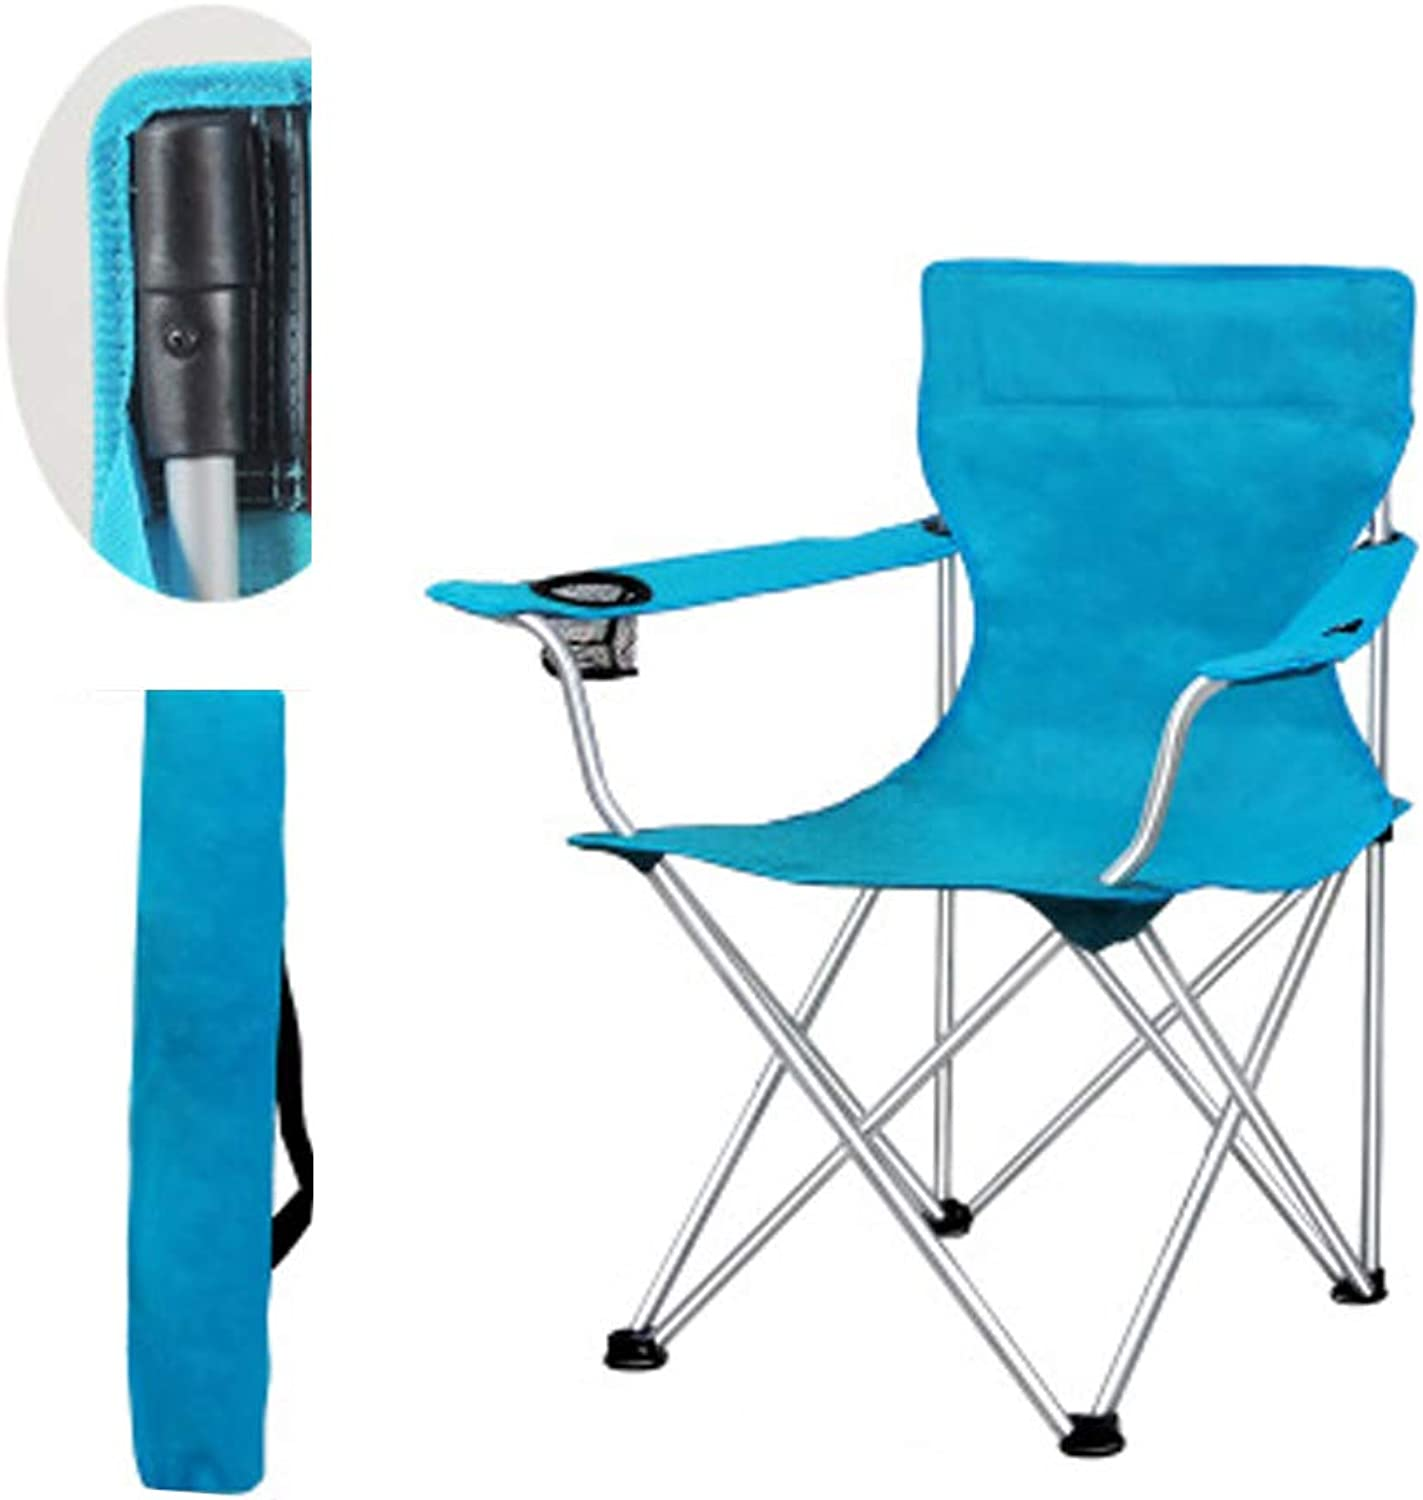 Oversized Quad Folding Camping Chair High Back Cup Holder Hard Armrest Carry Bag Included, Support 264 lbs,Skybluee